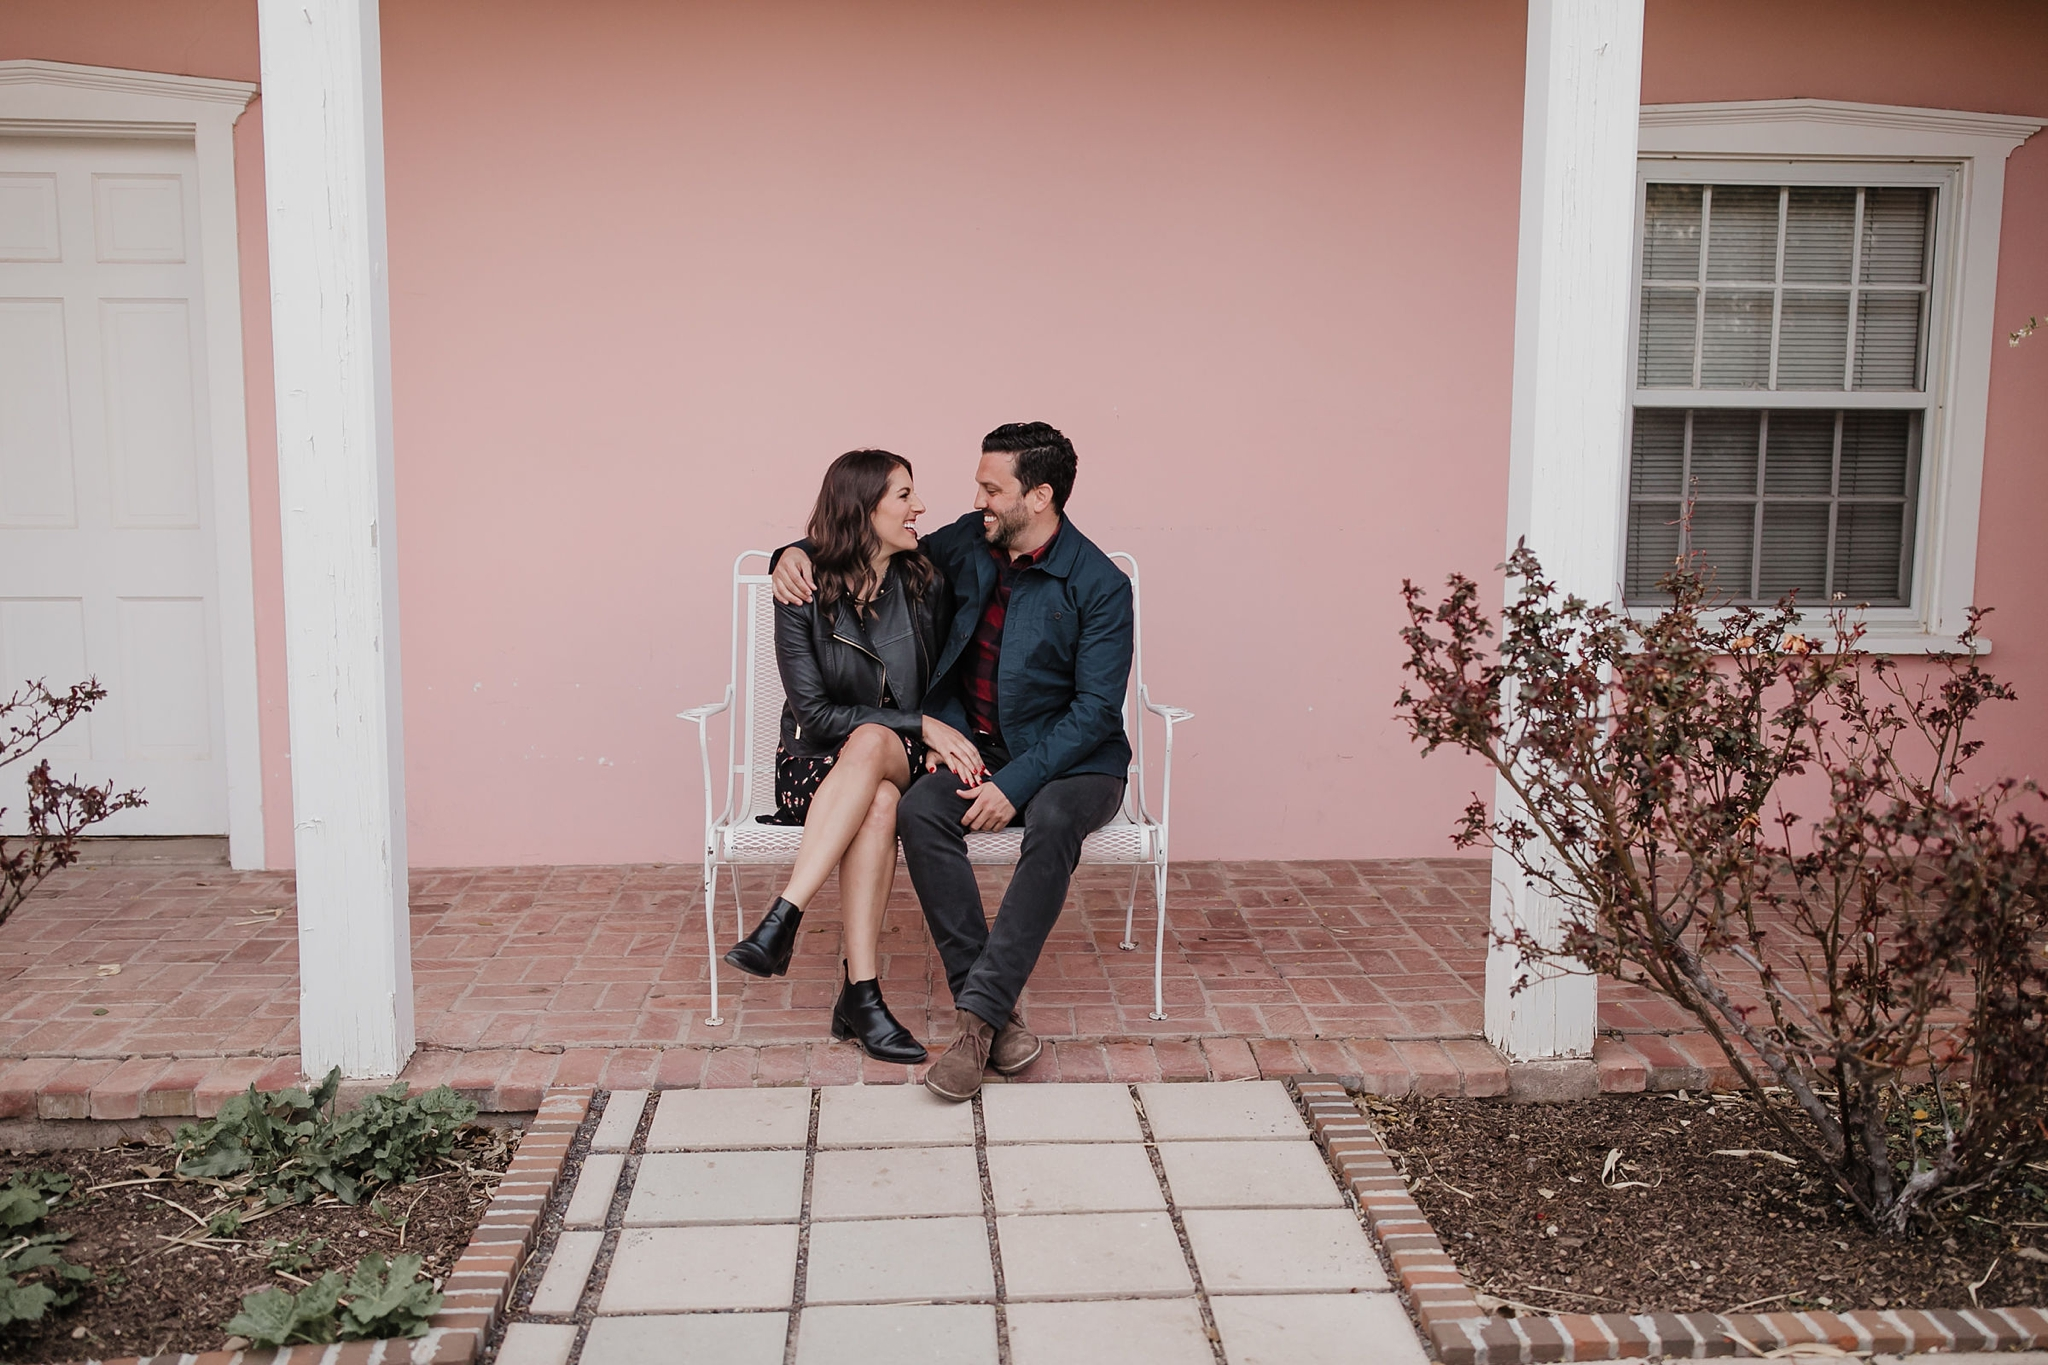 Alicia+lucia+photography+-+albuquerque+wedding+photographer+-+santa+fe+wedding+photography+-+new+mexico+wedding+photographer+-+new+mexico+wedding+-+new+mexico+engagement+-+los+poblanos+engagement+-+los+poblanos+wedding+-+fall+wedding_0013.jpg